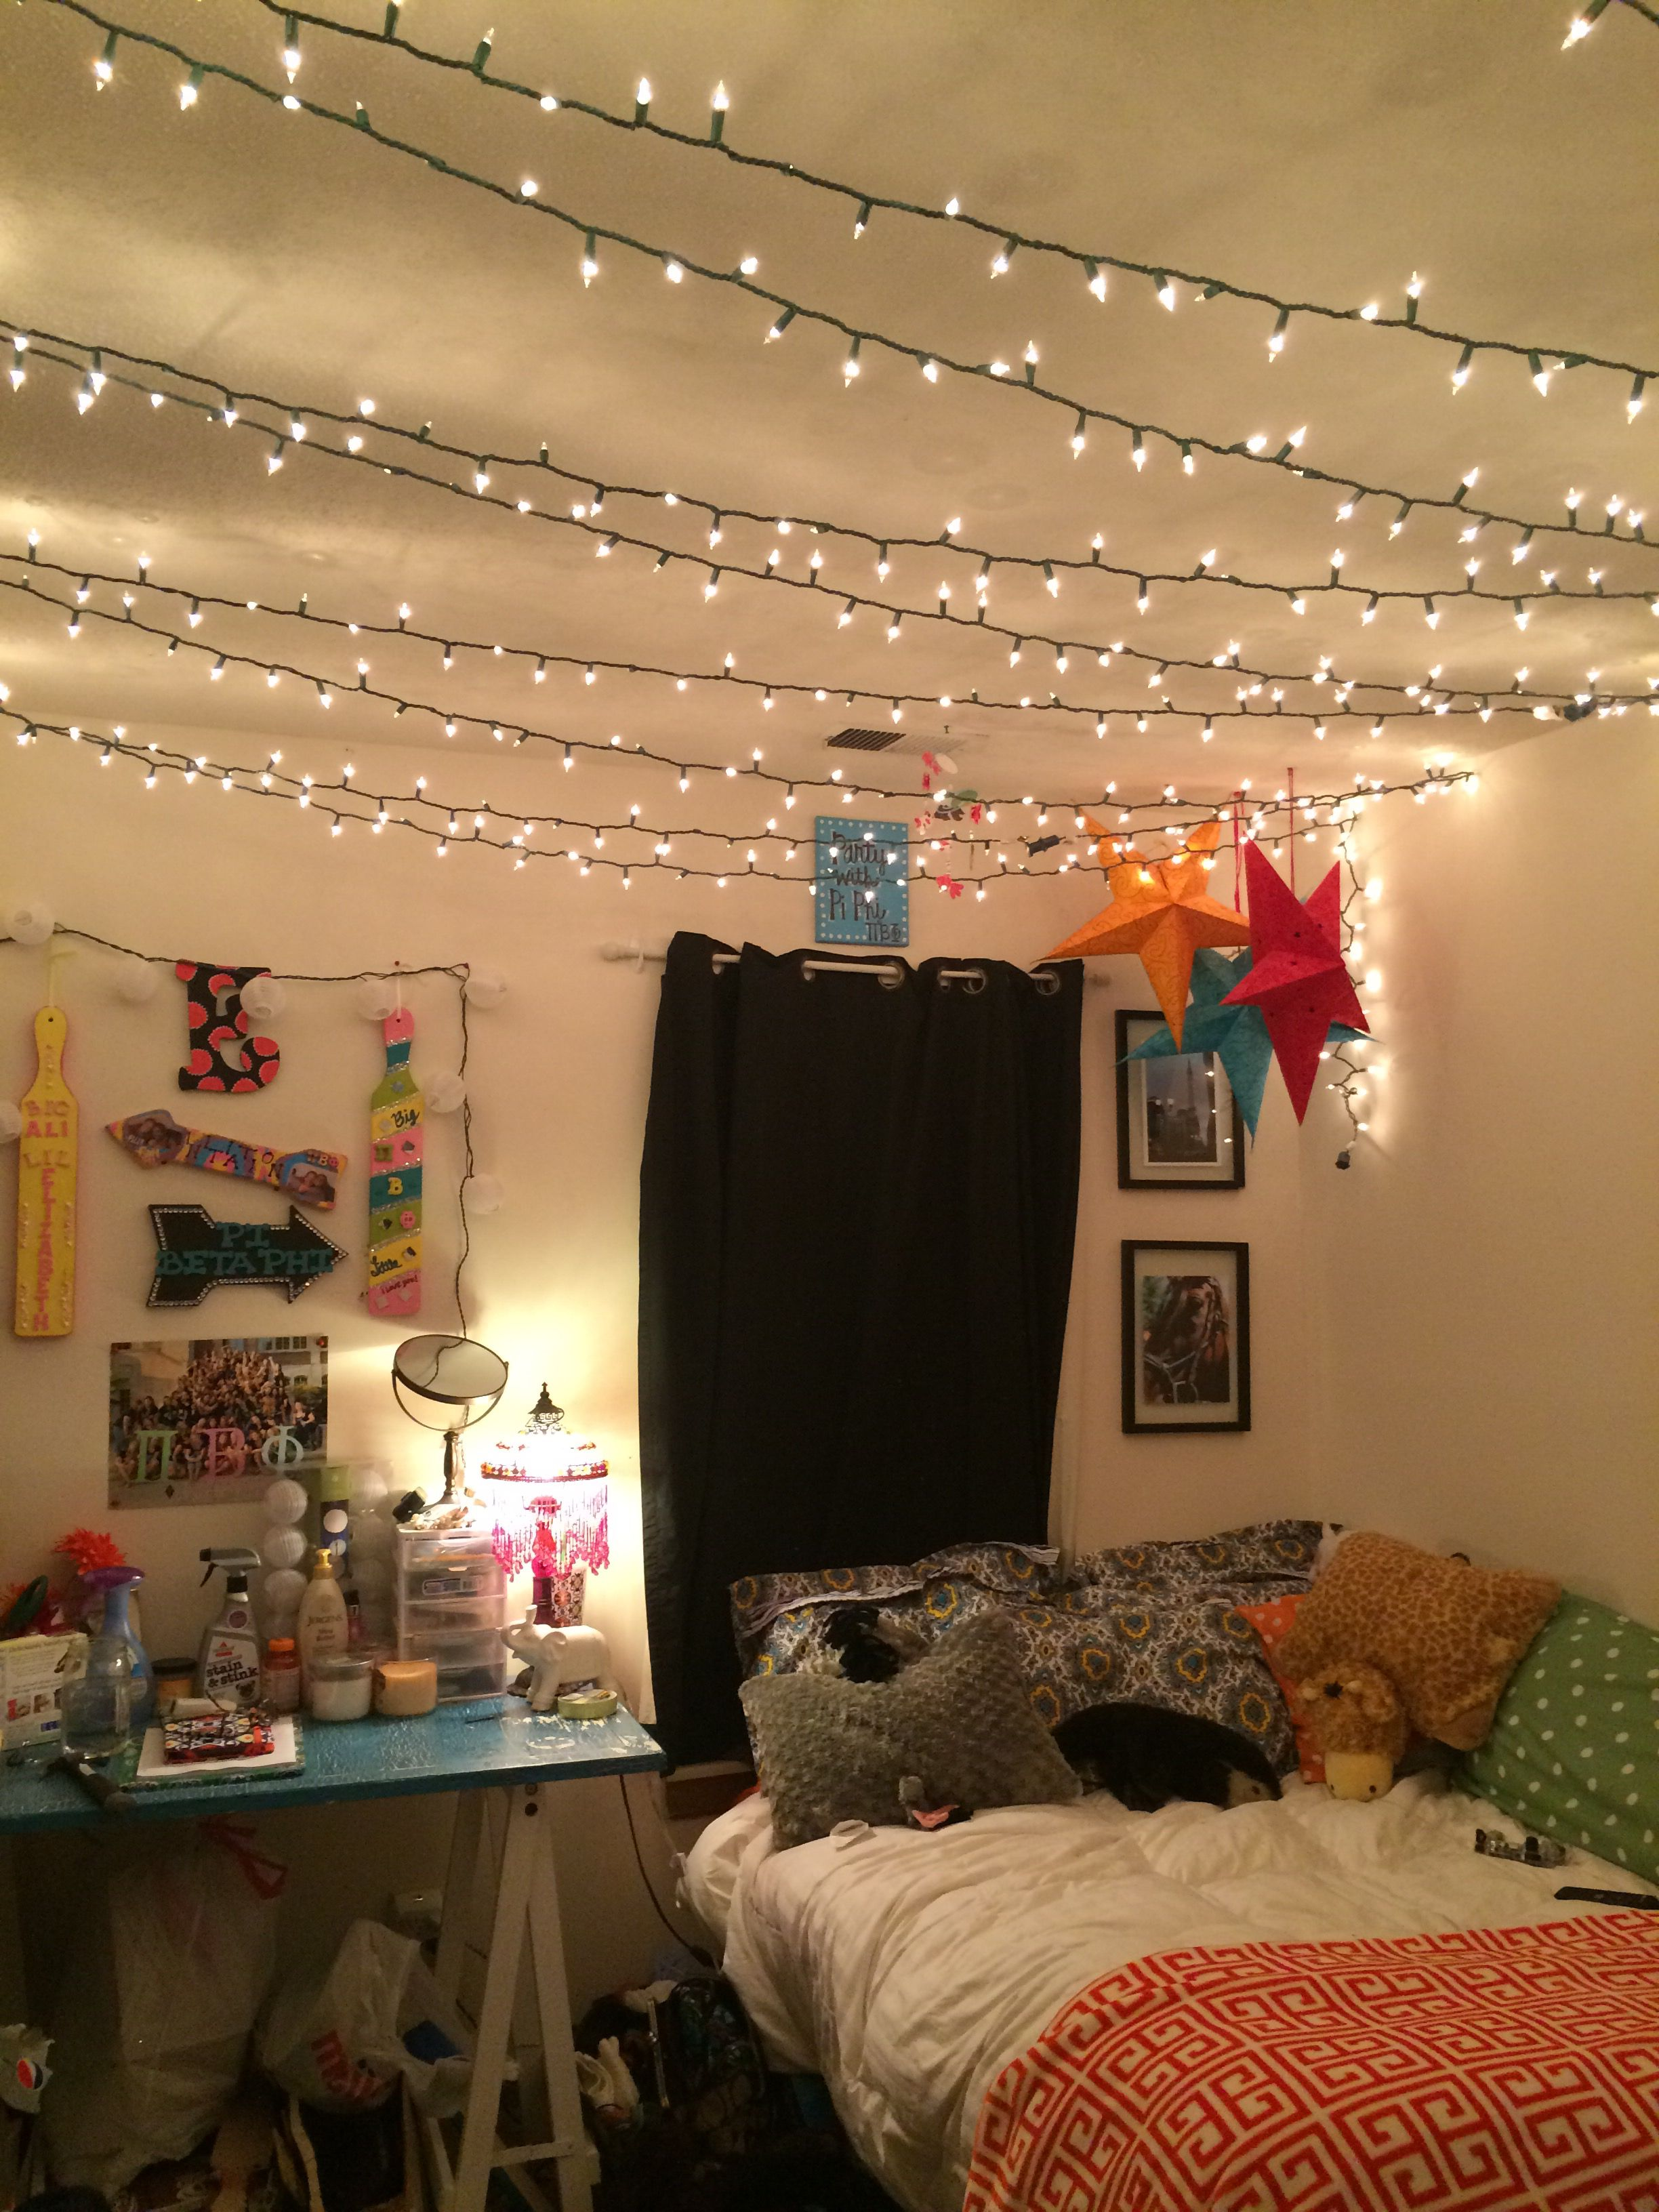 Pin On Home Decorating #no #ceiling #light #living #room